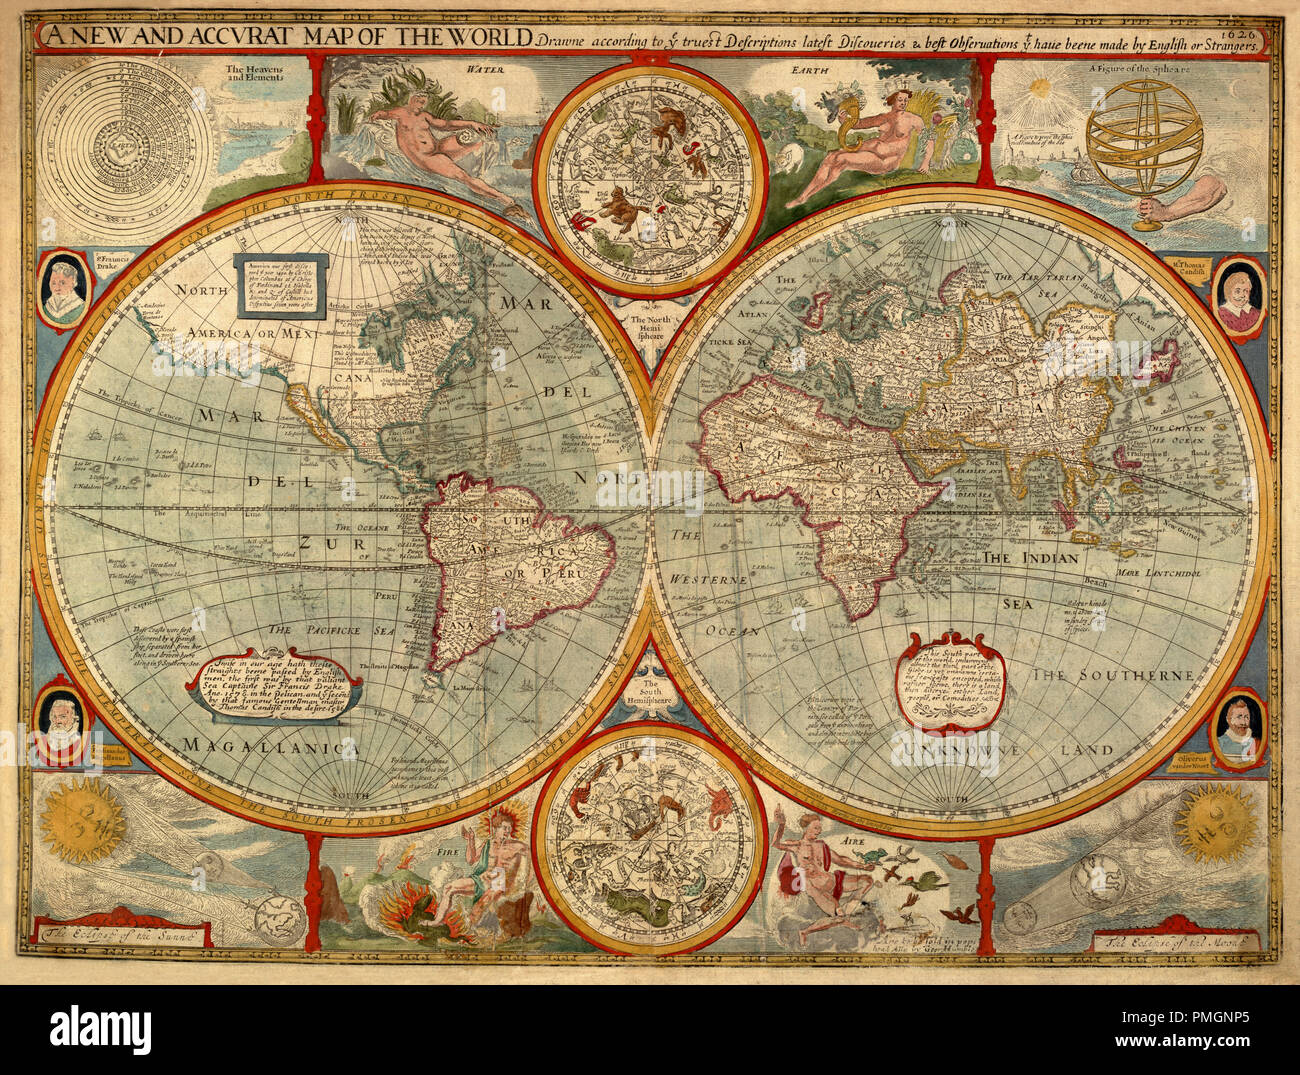 A New And Accvrat Map Of The World 1626.Celestial Map 1626 Stock Photo 219185853 Alamy